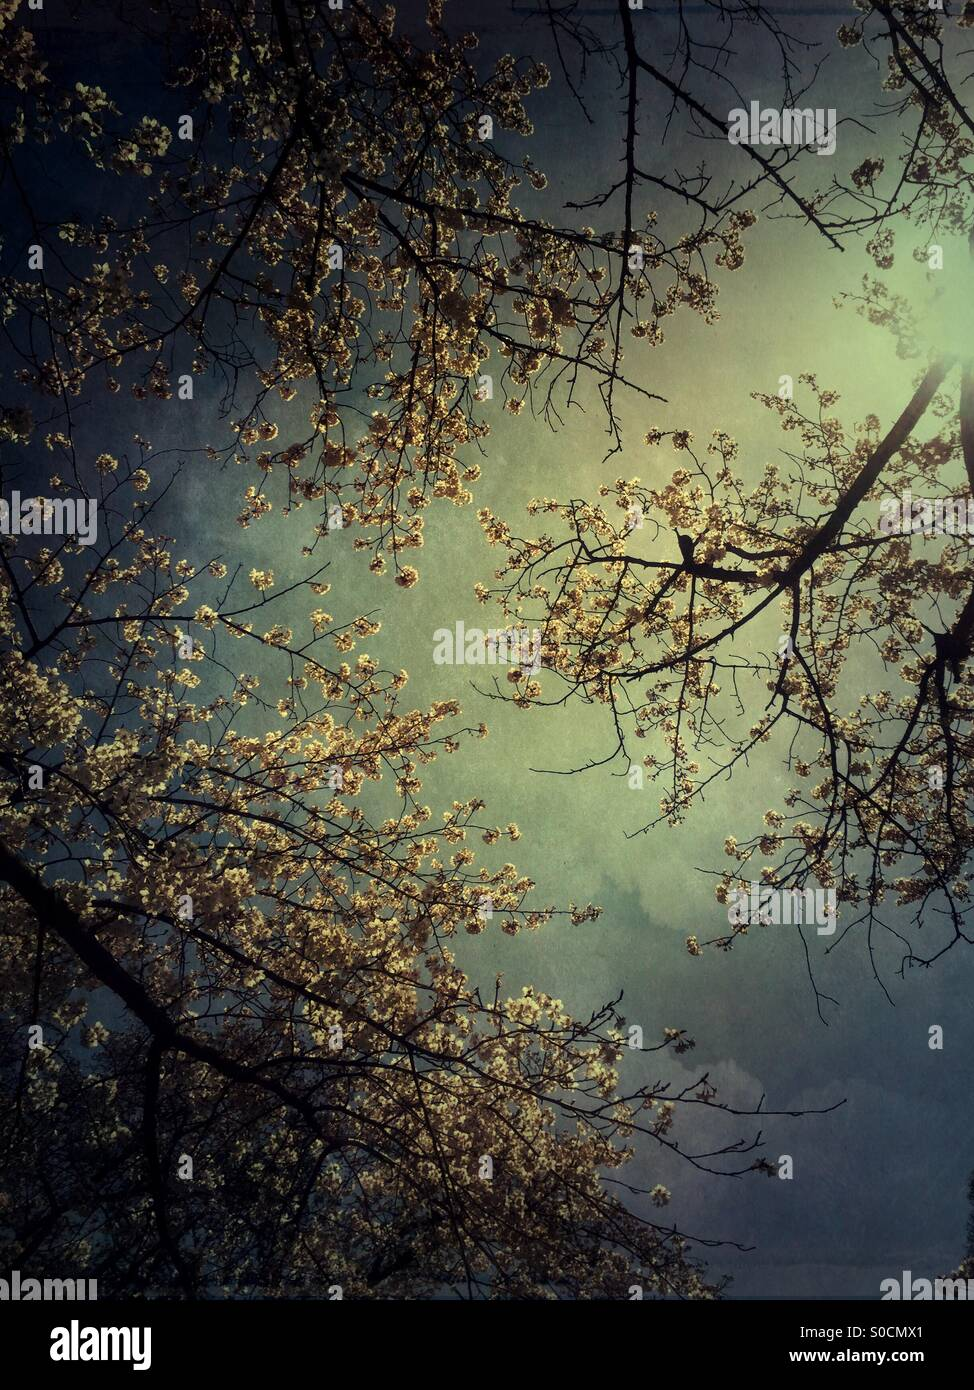 Dramatic white cherry blossom branches under dark stormy clouds parting to reveal a touch of sunlight. Vintage paper - Stock Image